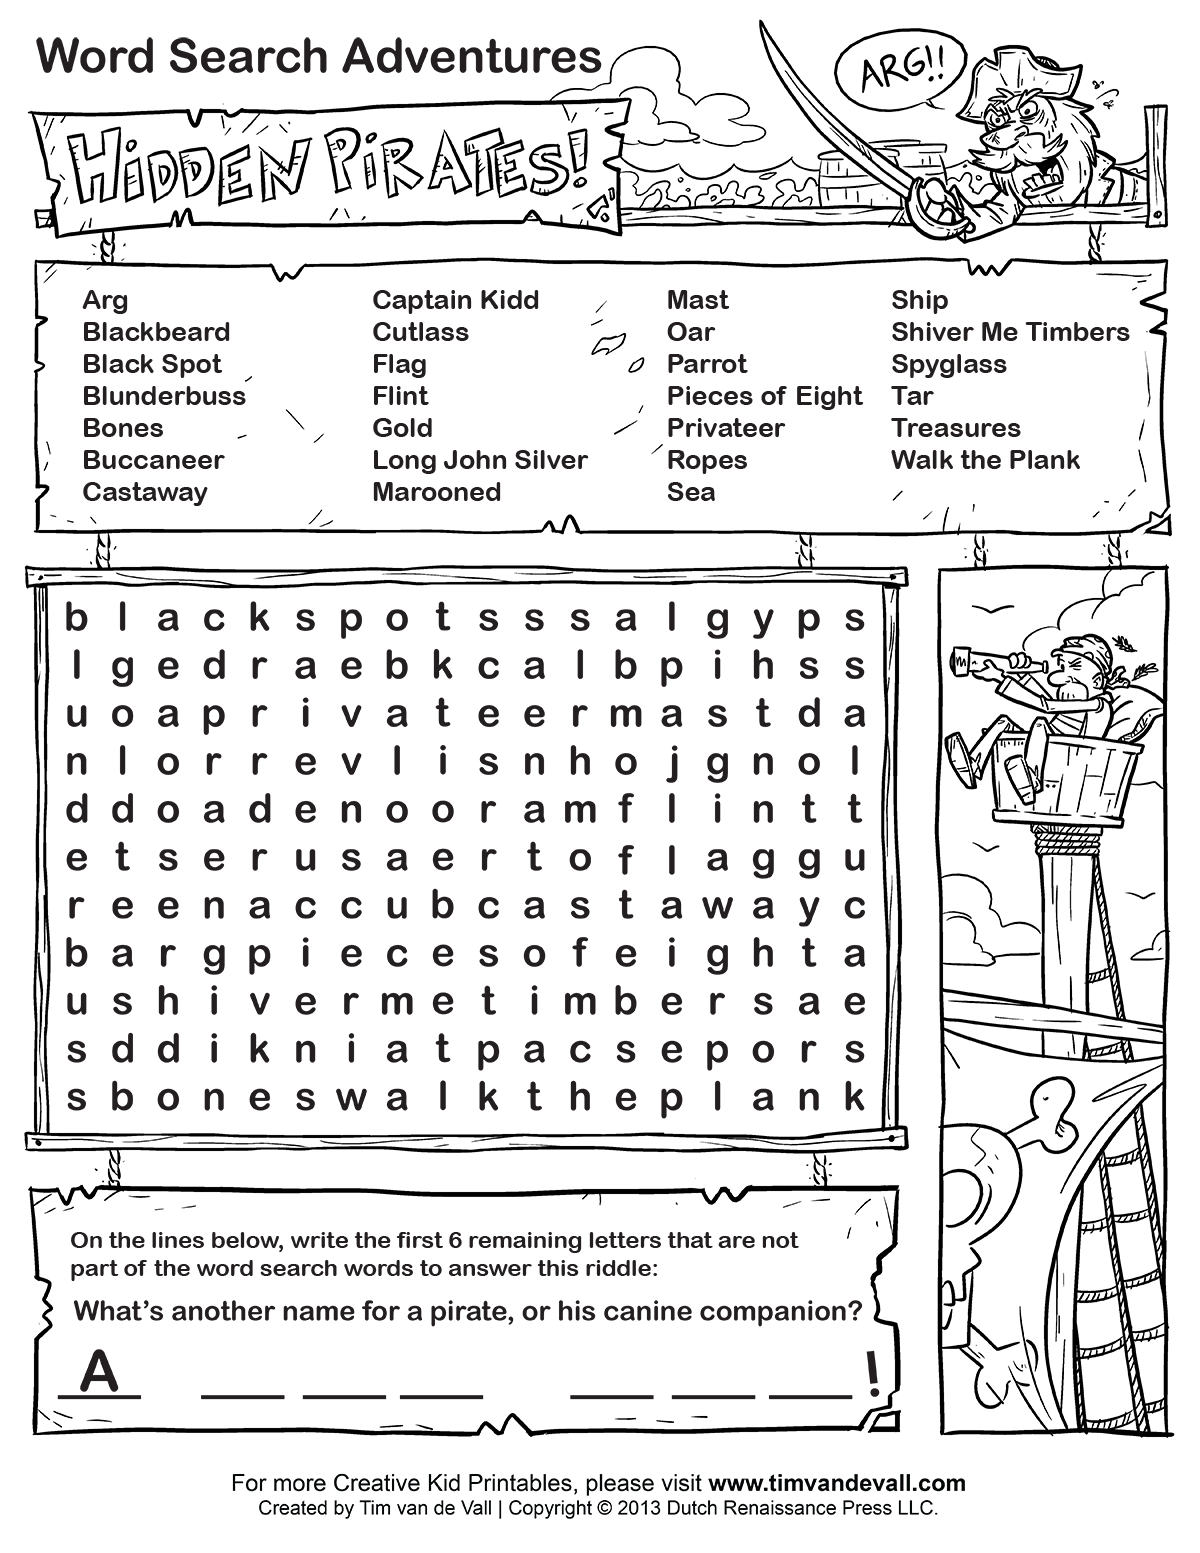 Revolutionary Free Wordsearches For Kids Printable Word Searches